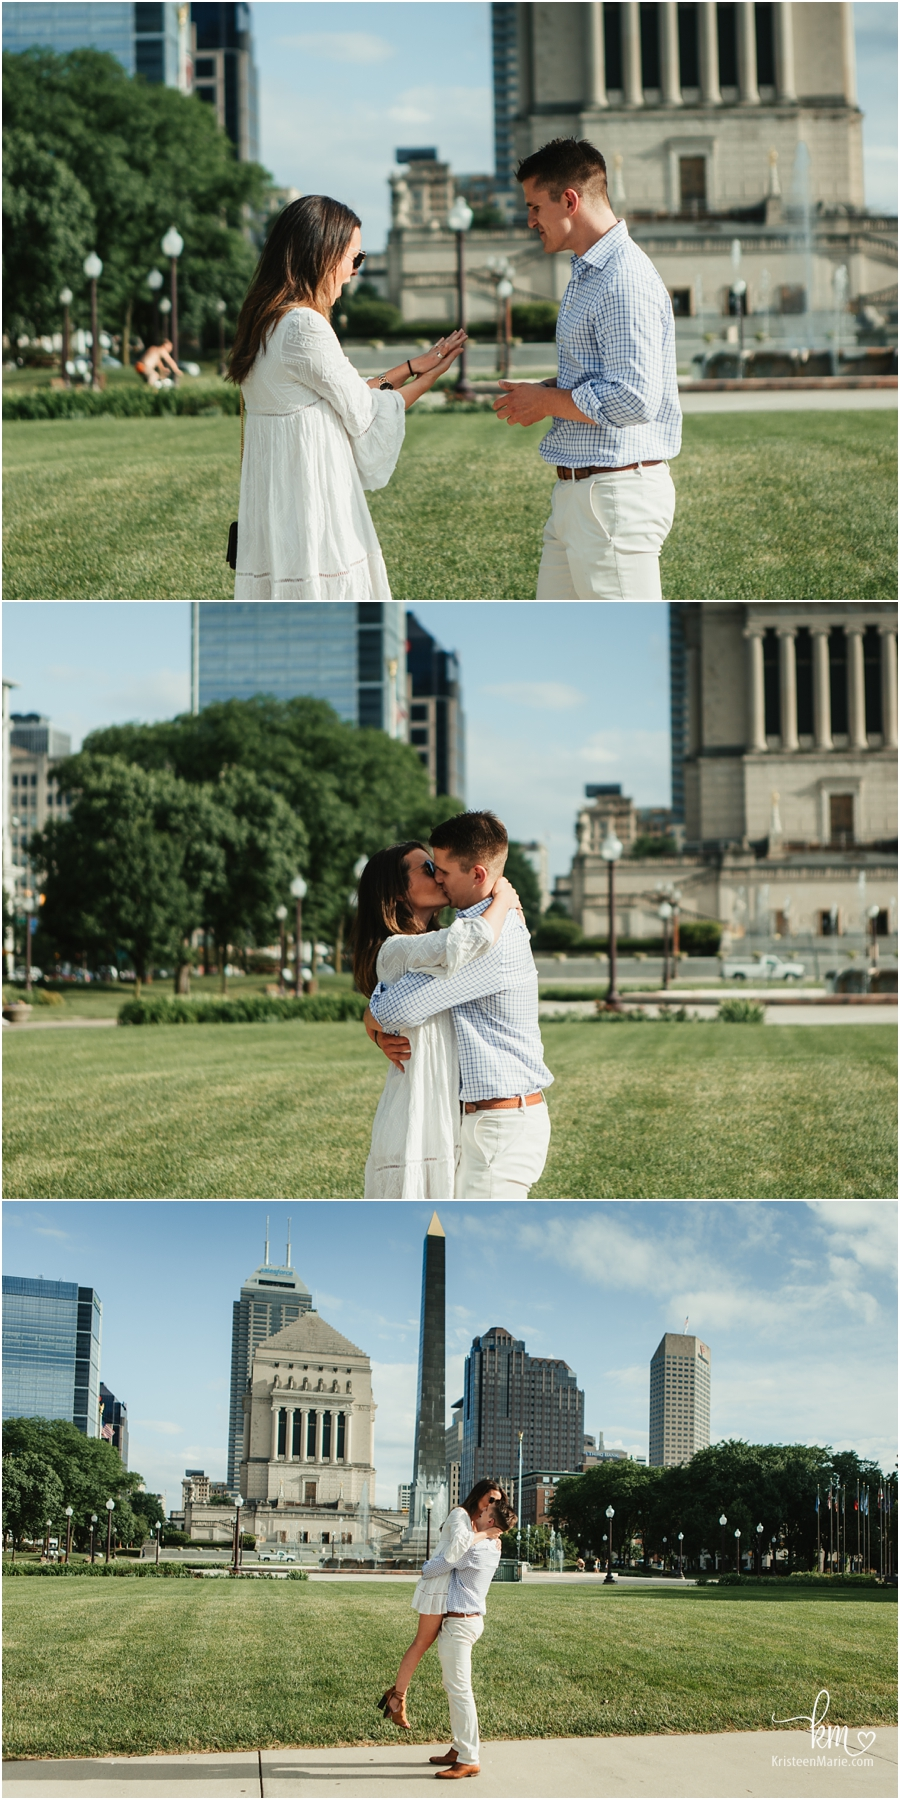 Moments after proposal - Indianapolis proposal photographer